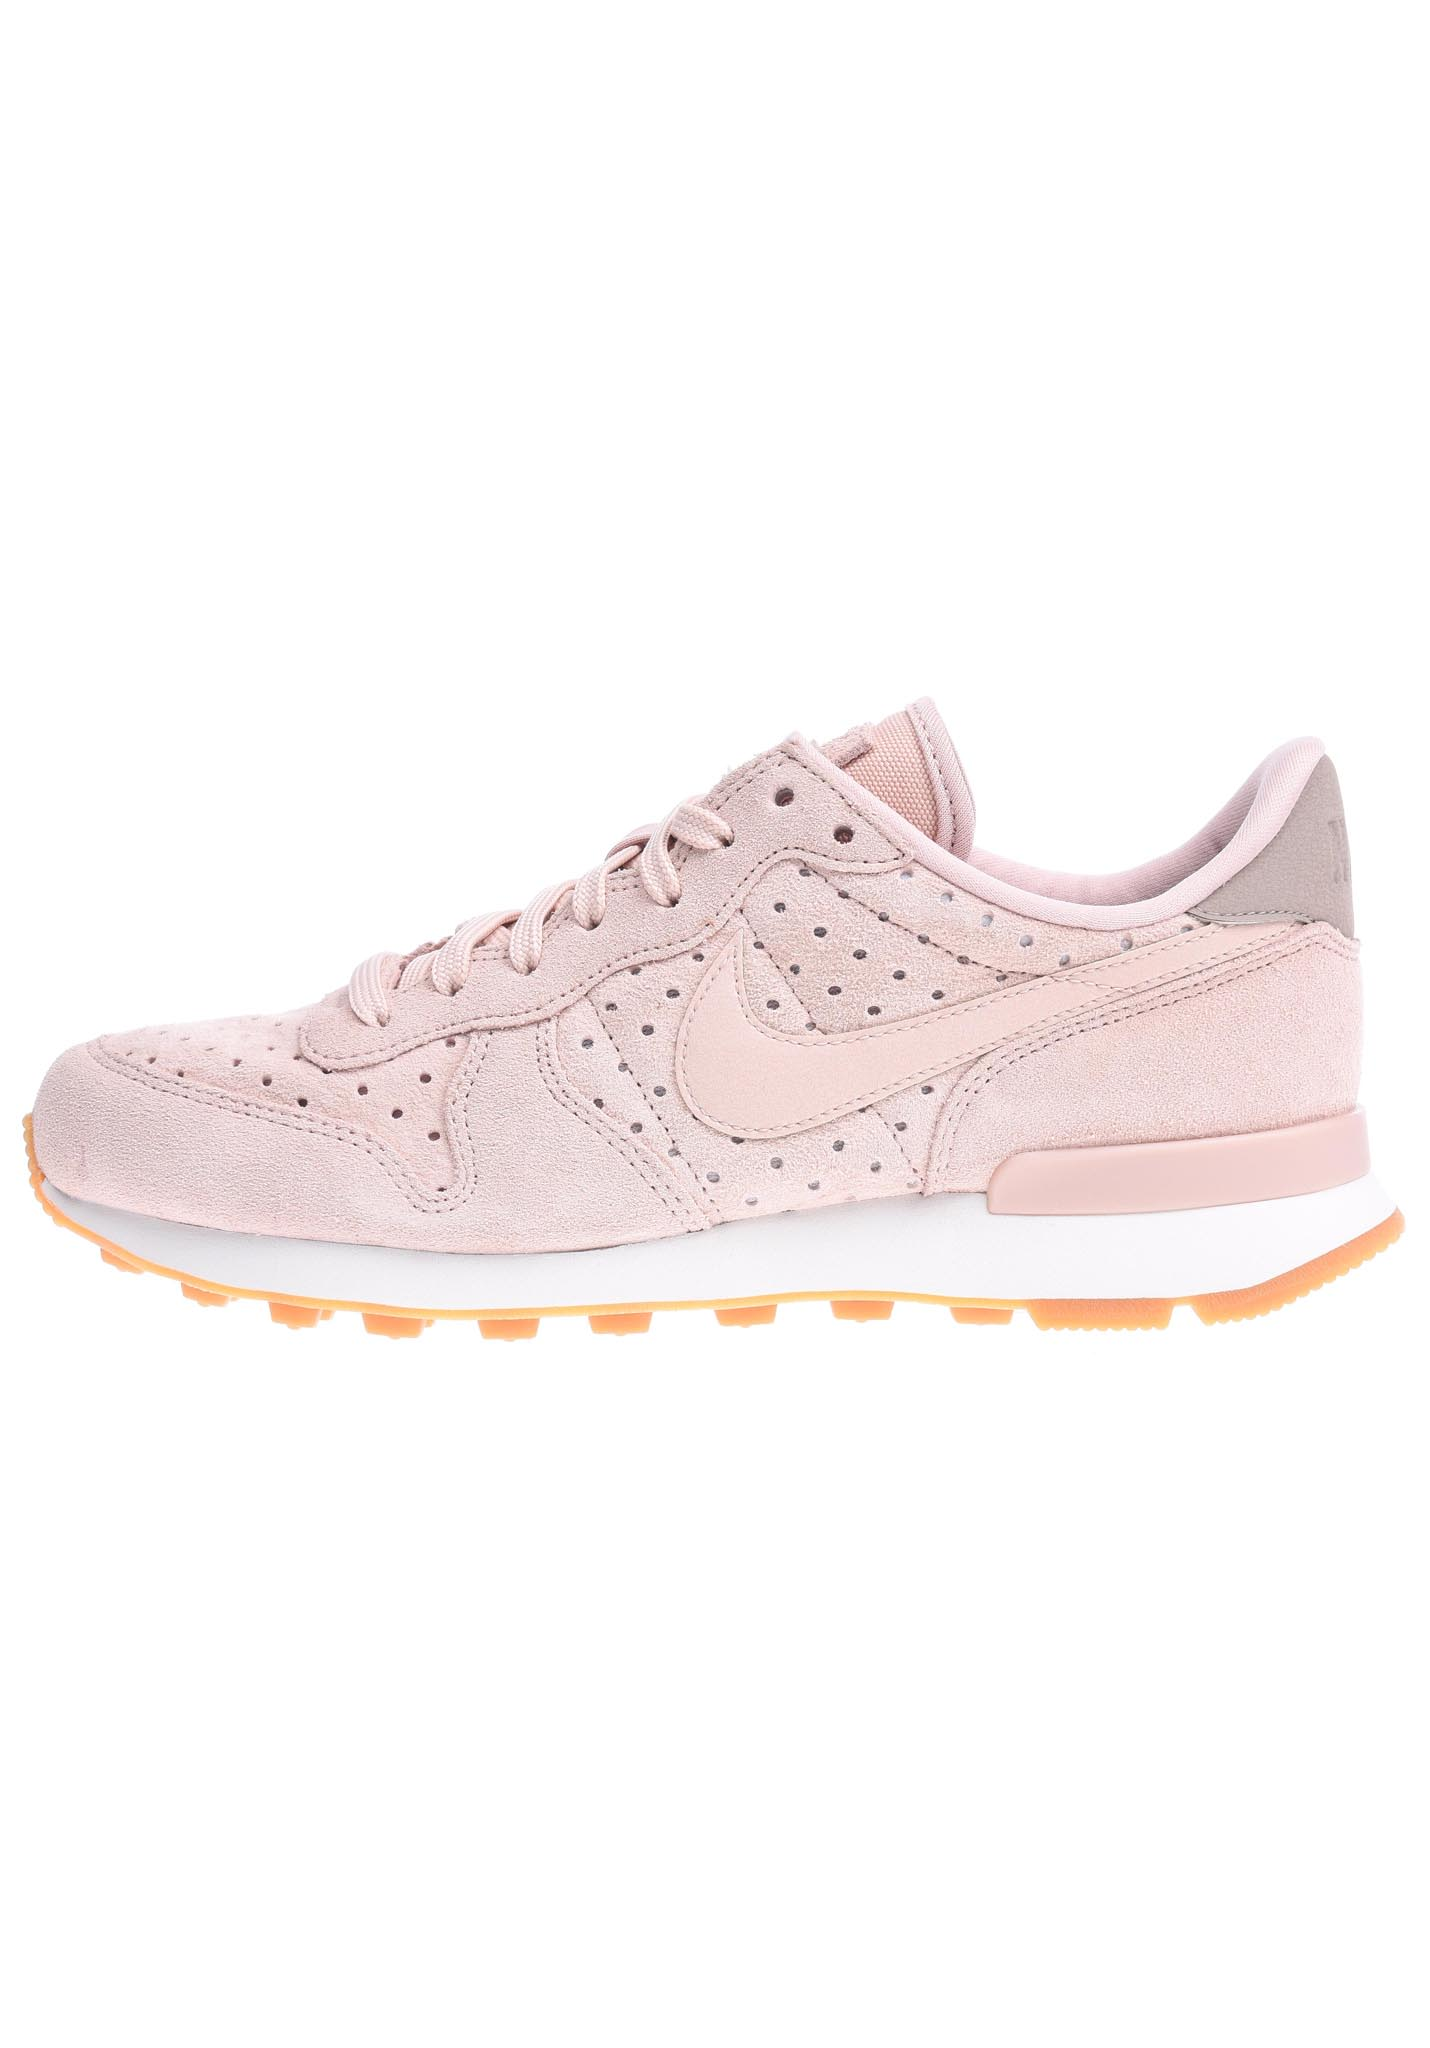 NIKE SPORTSWEAR Internationalist Sneakers for Women Pink